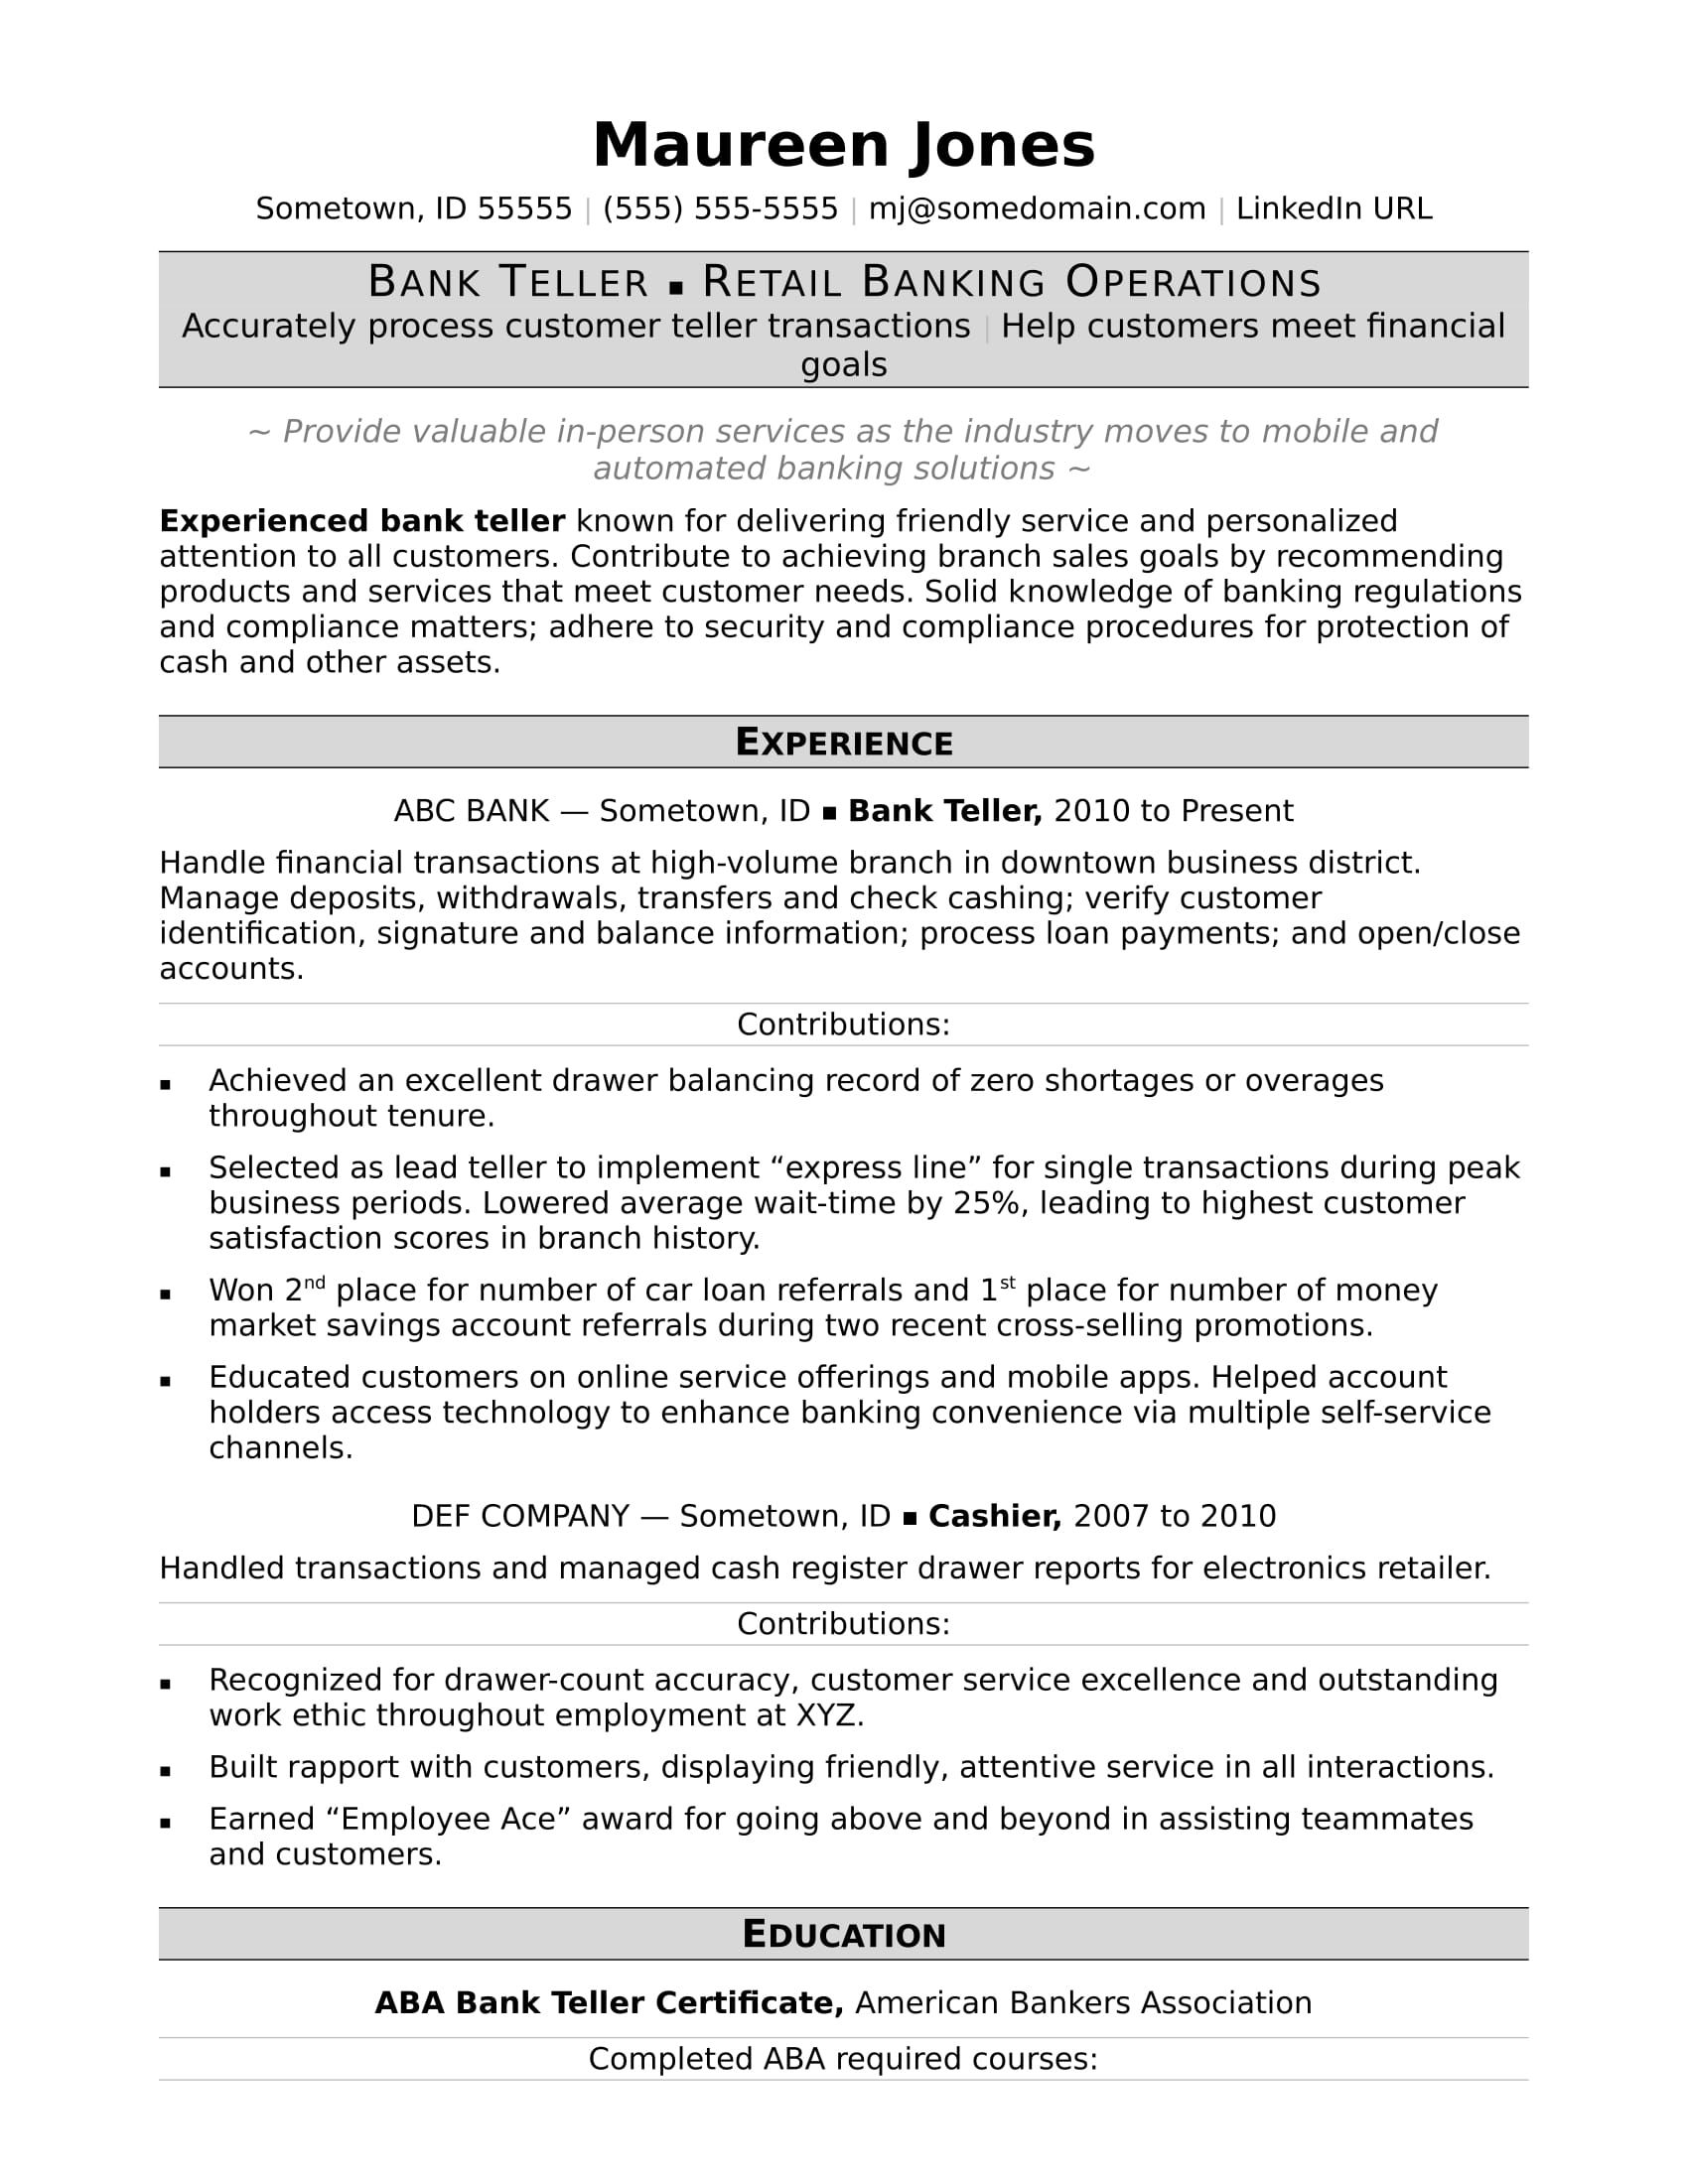 Bank teller resume sample - Bank teller resume, Bank teller, Job resume template, Resume examples, Job resume, Bank jobs - See how your resume can help launch your career in banking with this bank teller resume sample